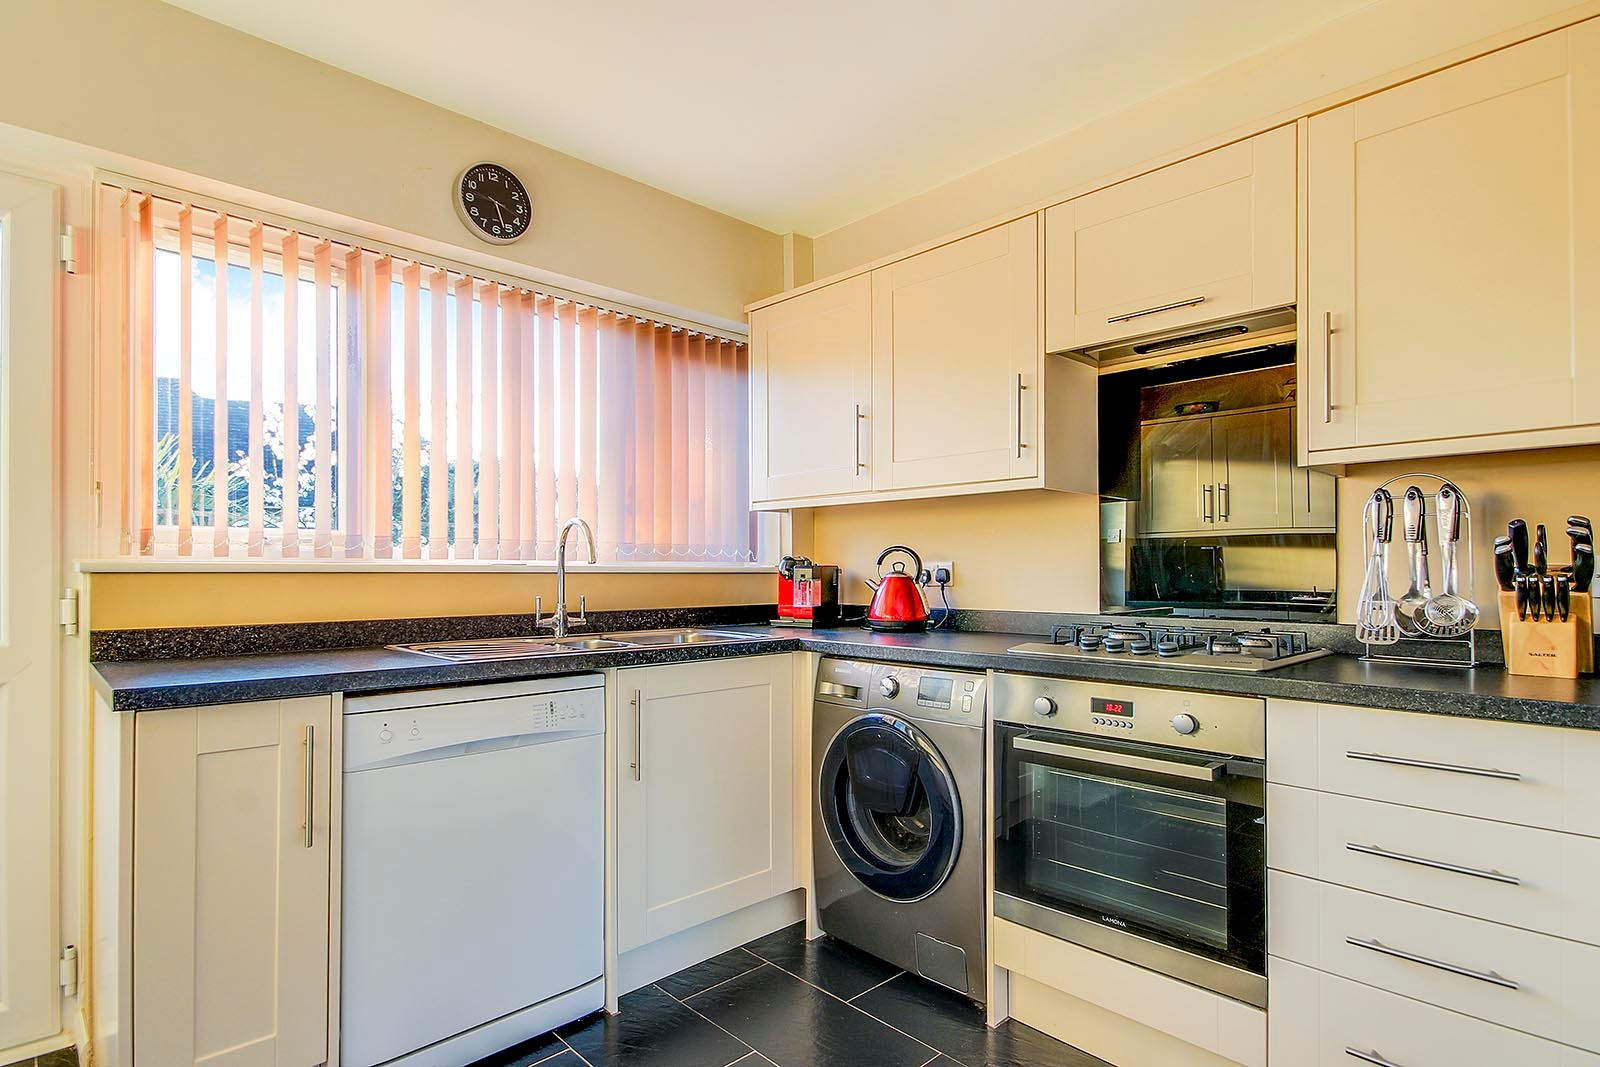 2 bed bungalow for sale in Halliford Drive (COMP AUG 19) 4